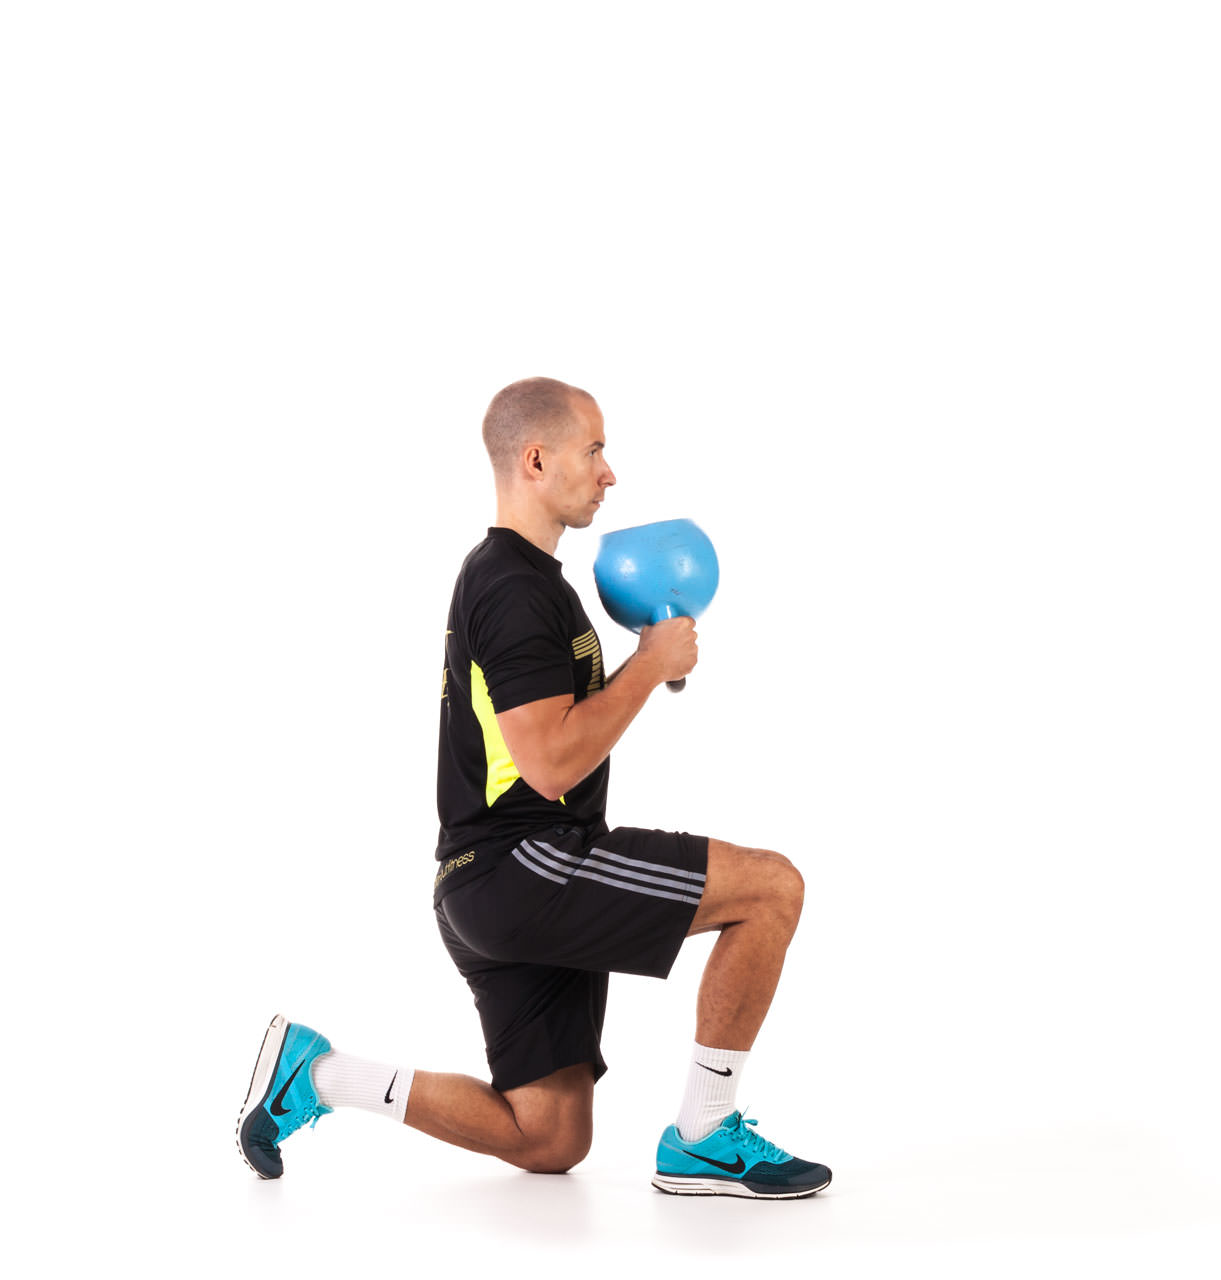 Kettlebell Kneeling to Stand Up frame #2